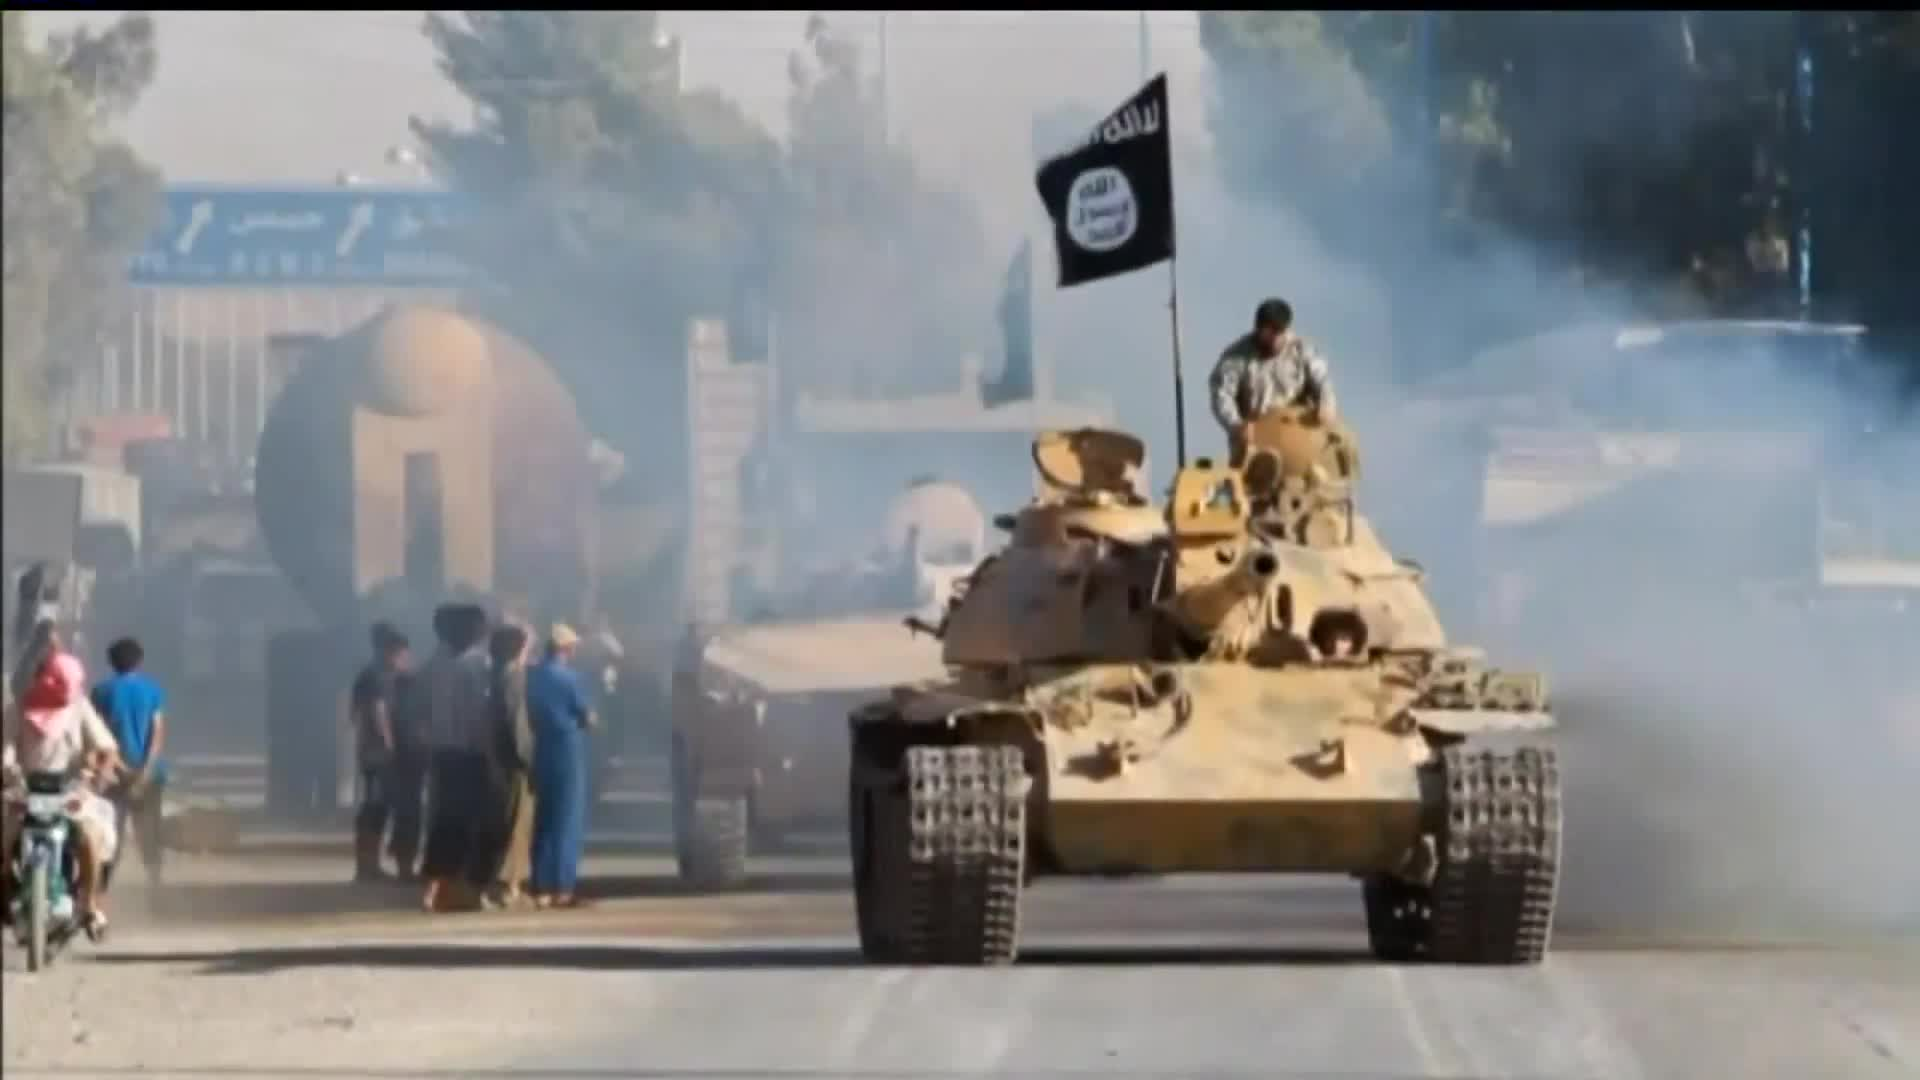 Alleged Pennsylvania ISIS Supporter 'Did Nothing Other Than Tweet,' Lawyer Says